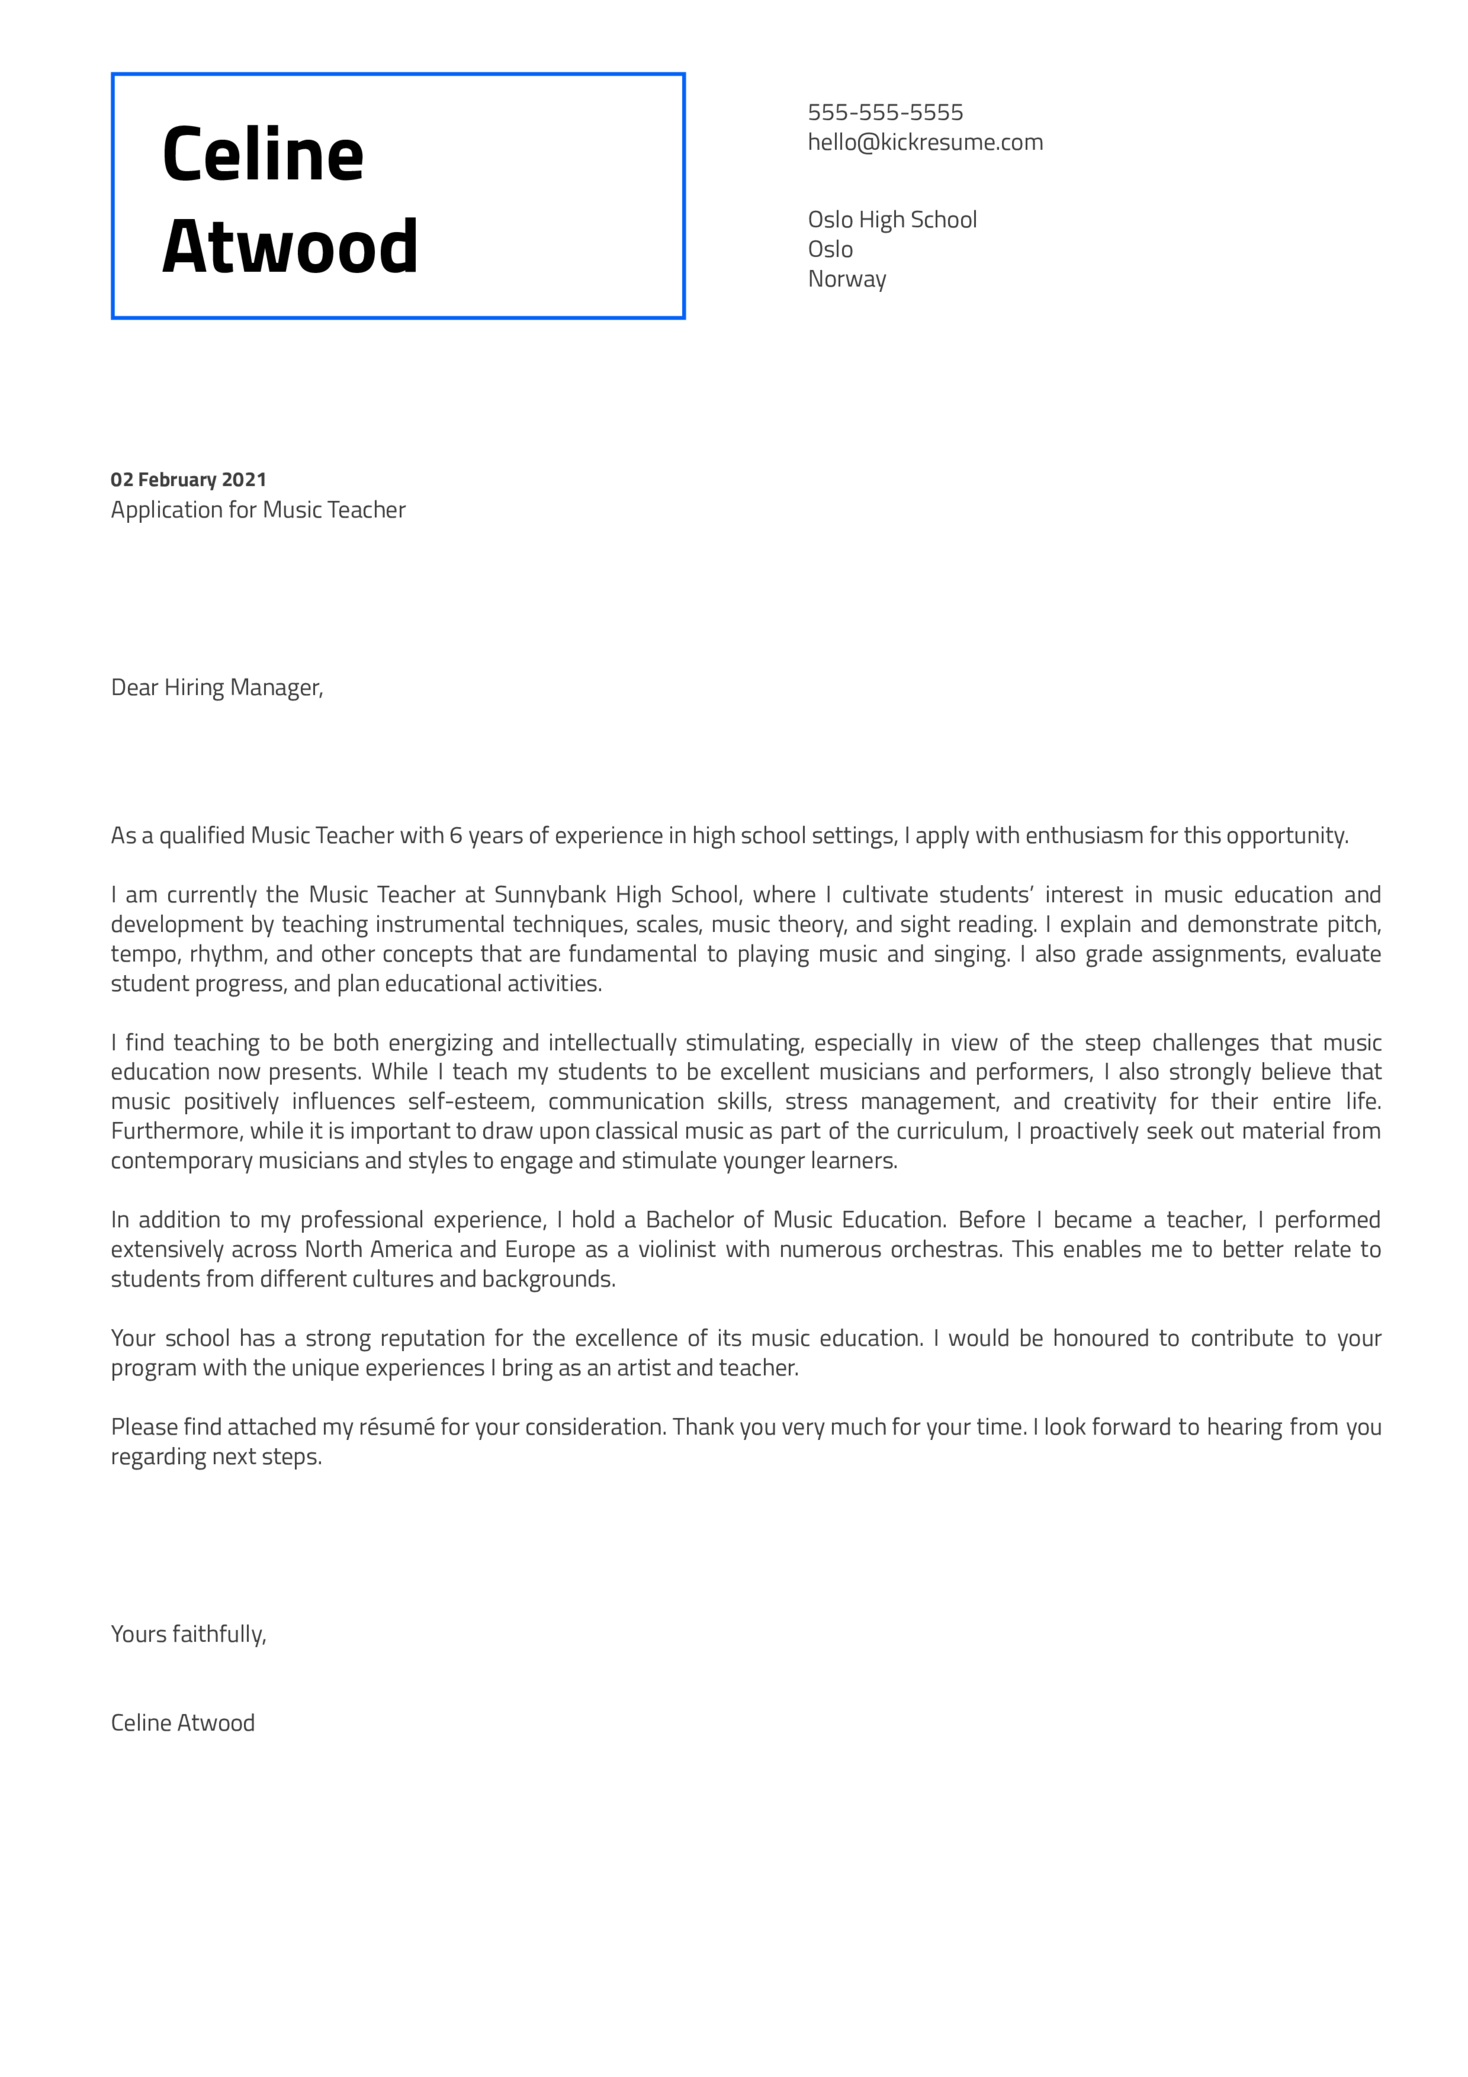 Music Teacher Cover Letter Template